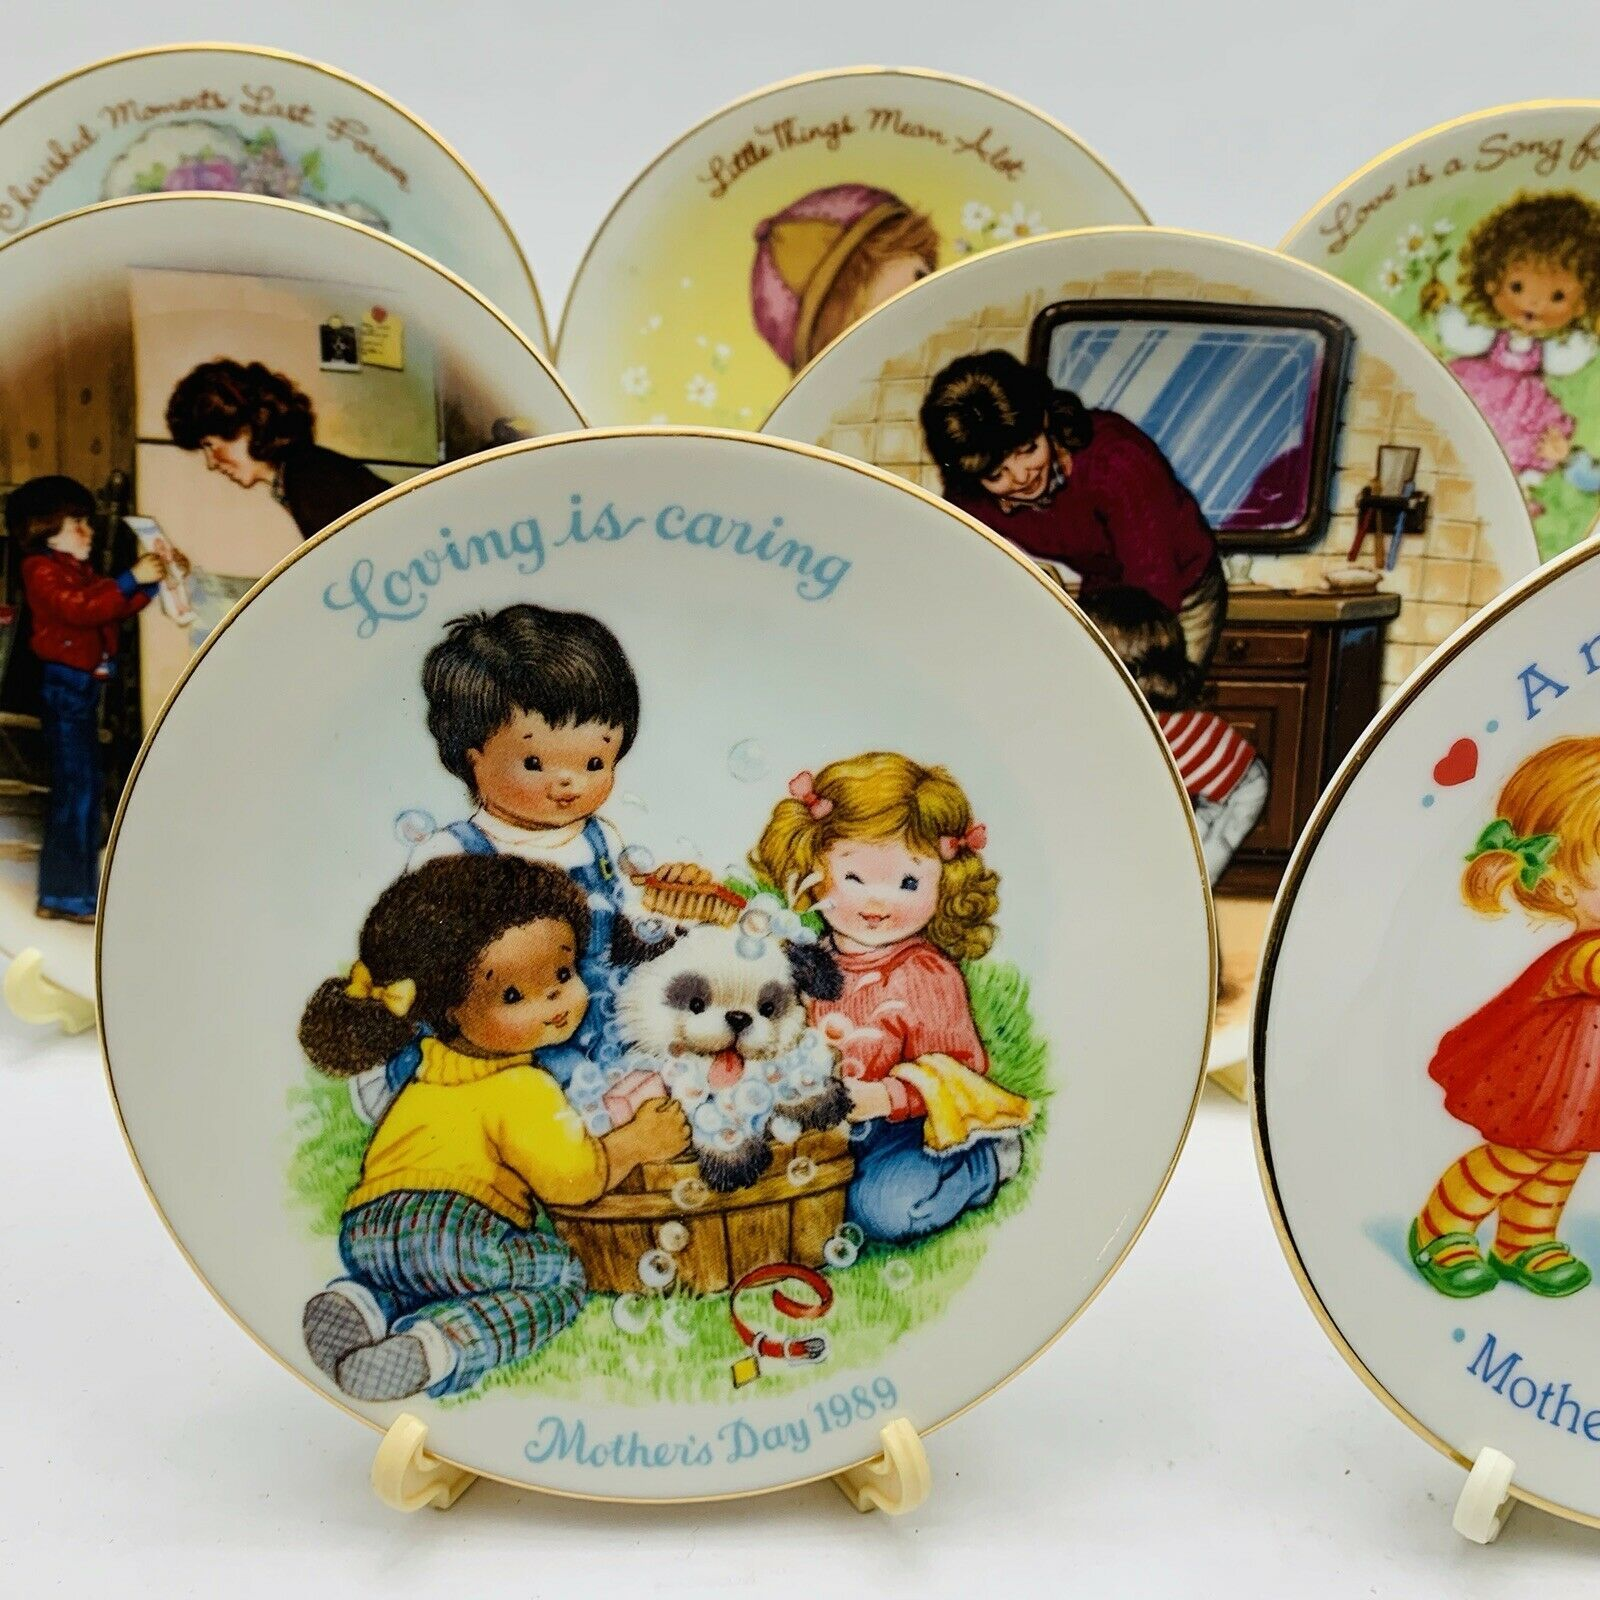 Avon Mothers Day Plates Set of 11 with Easels 1981-1991 image 3